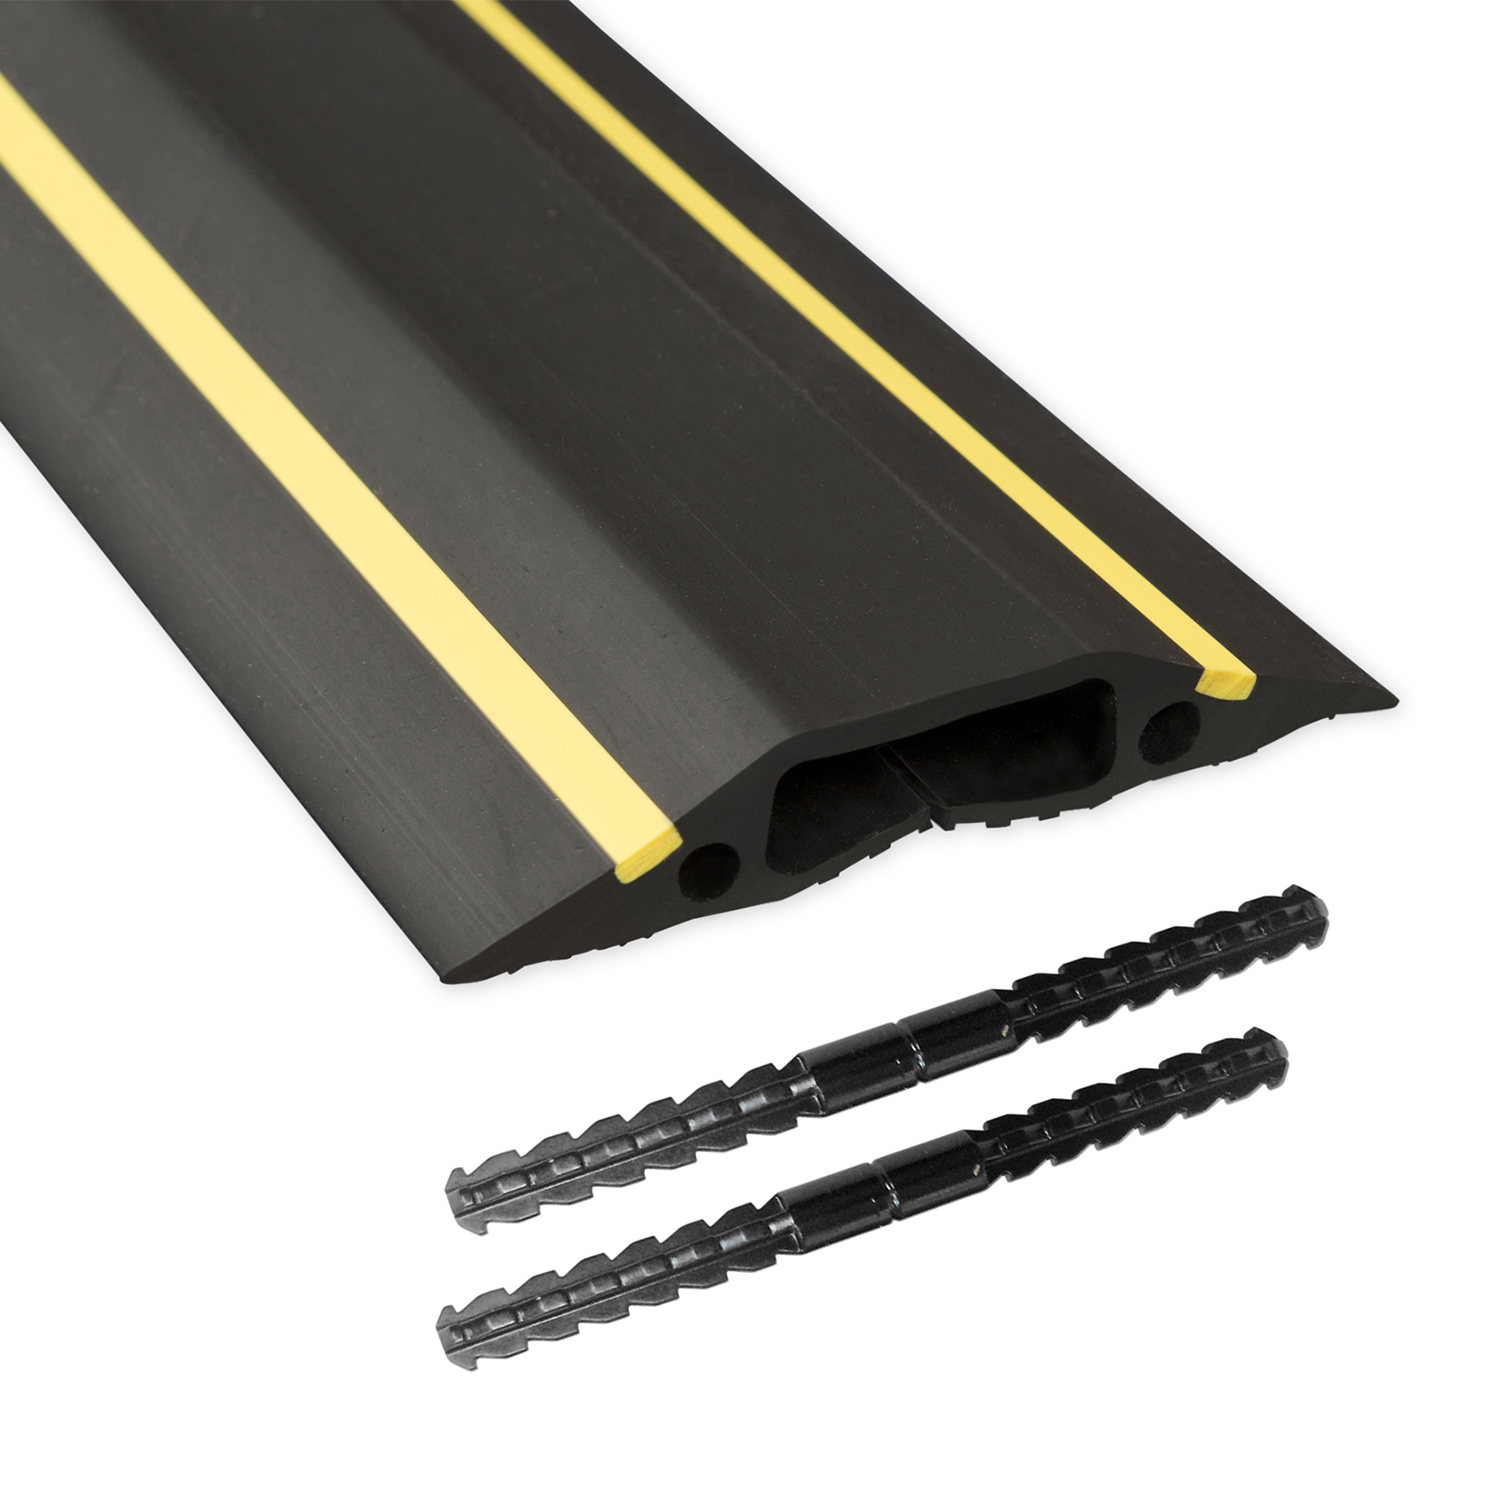 D-Line Floor Cable Cover 83mm x 1.8m Black and Yellow Ref FC83H